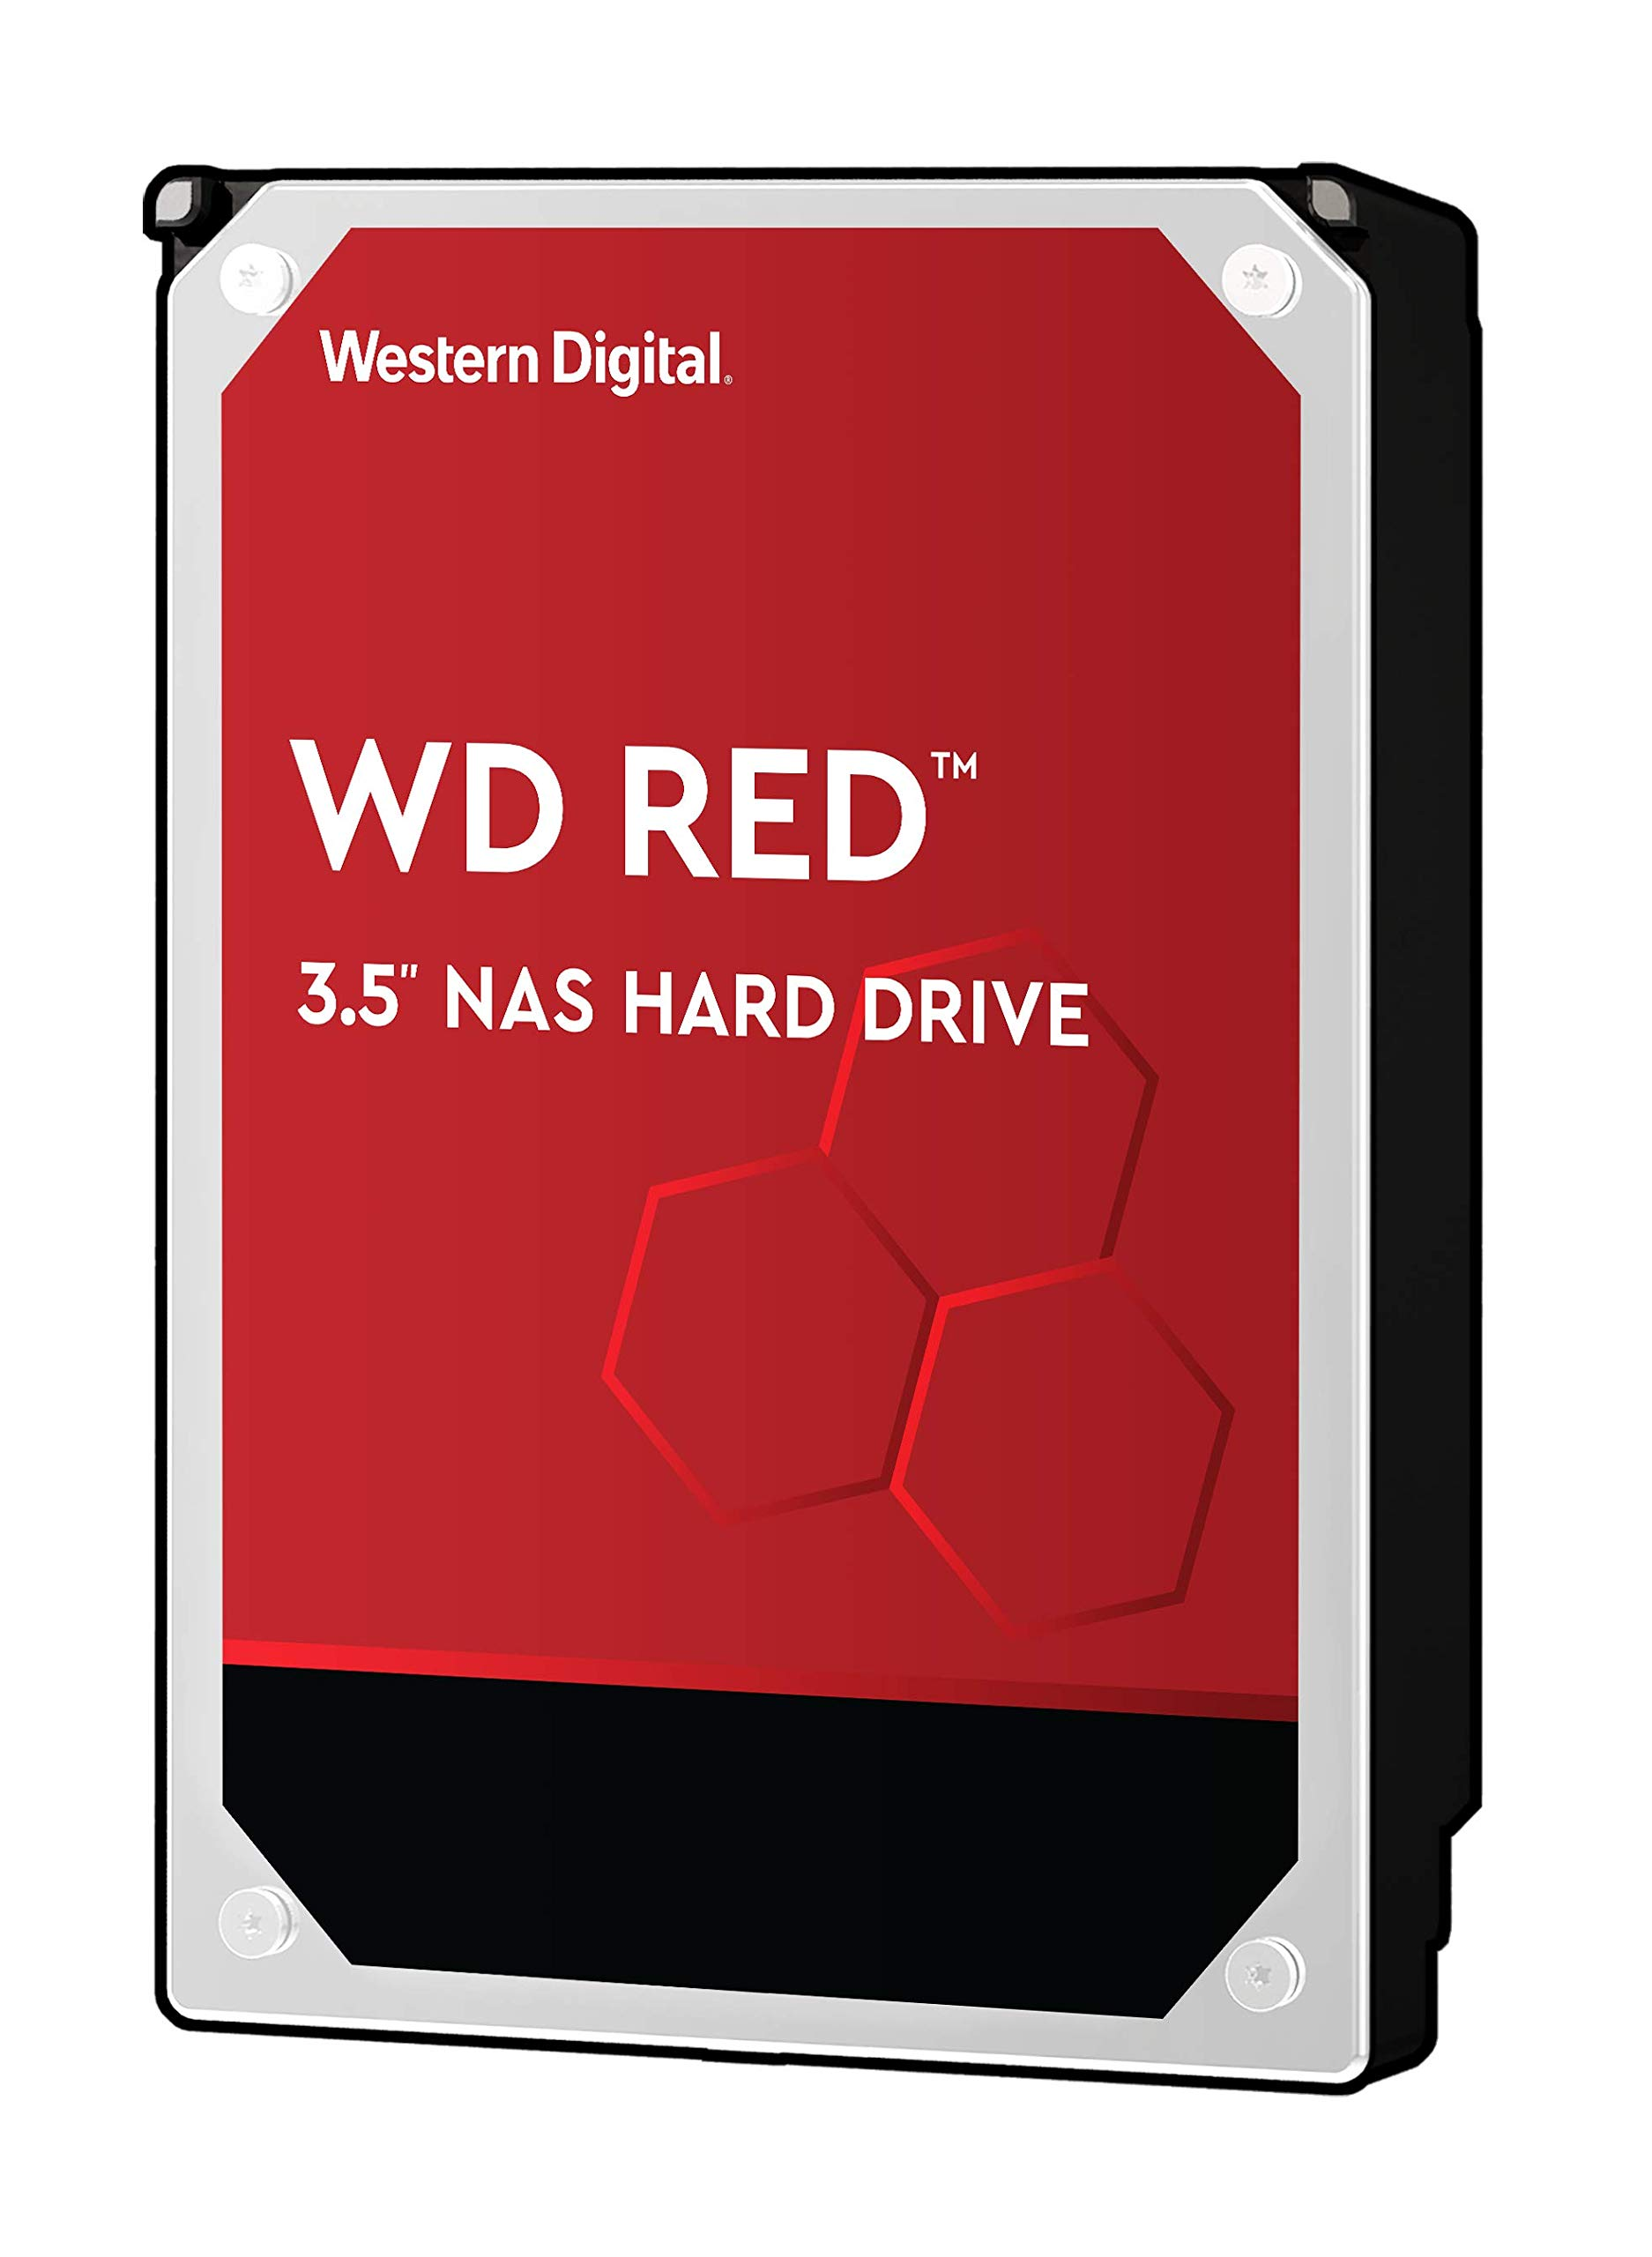 WD Red 6TB NAS Internal Hard Drive - 5400 RPM Class, SATA 6 GB/S, 256MB Cache, 3.5'' - WD60EFAX by Western Digital (Image #1)